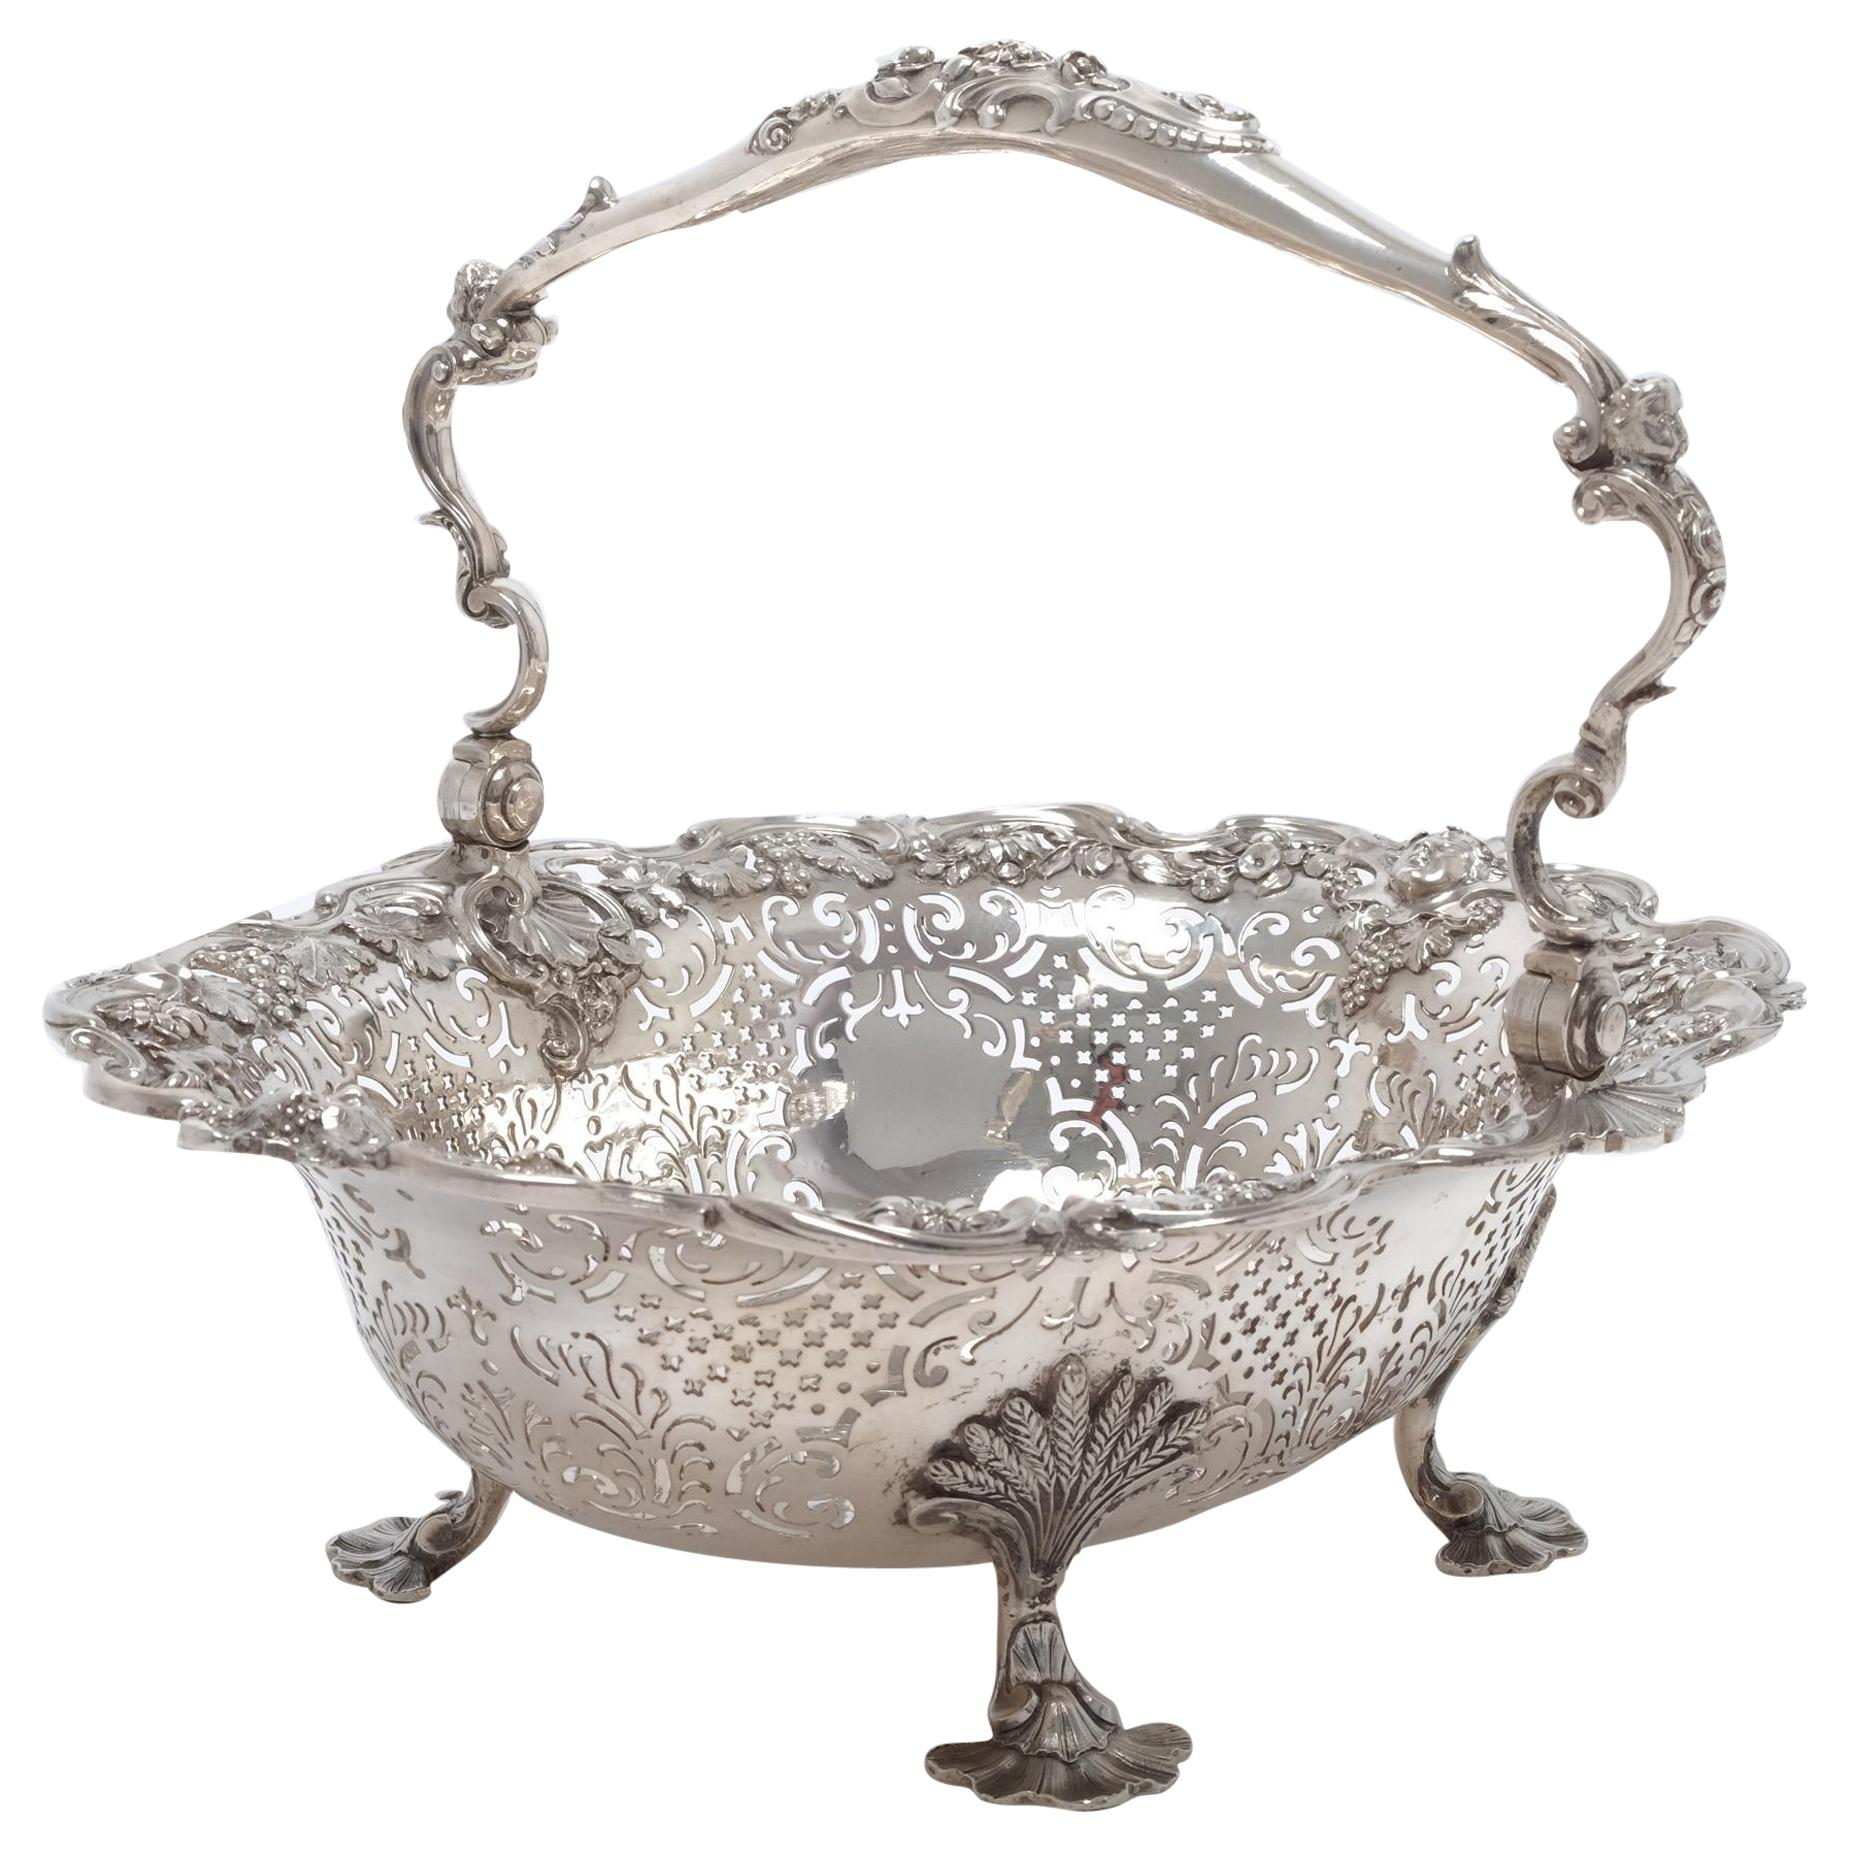 George II Bowls and Baskets